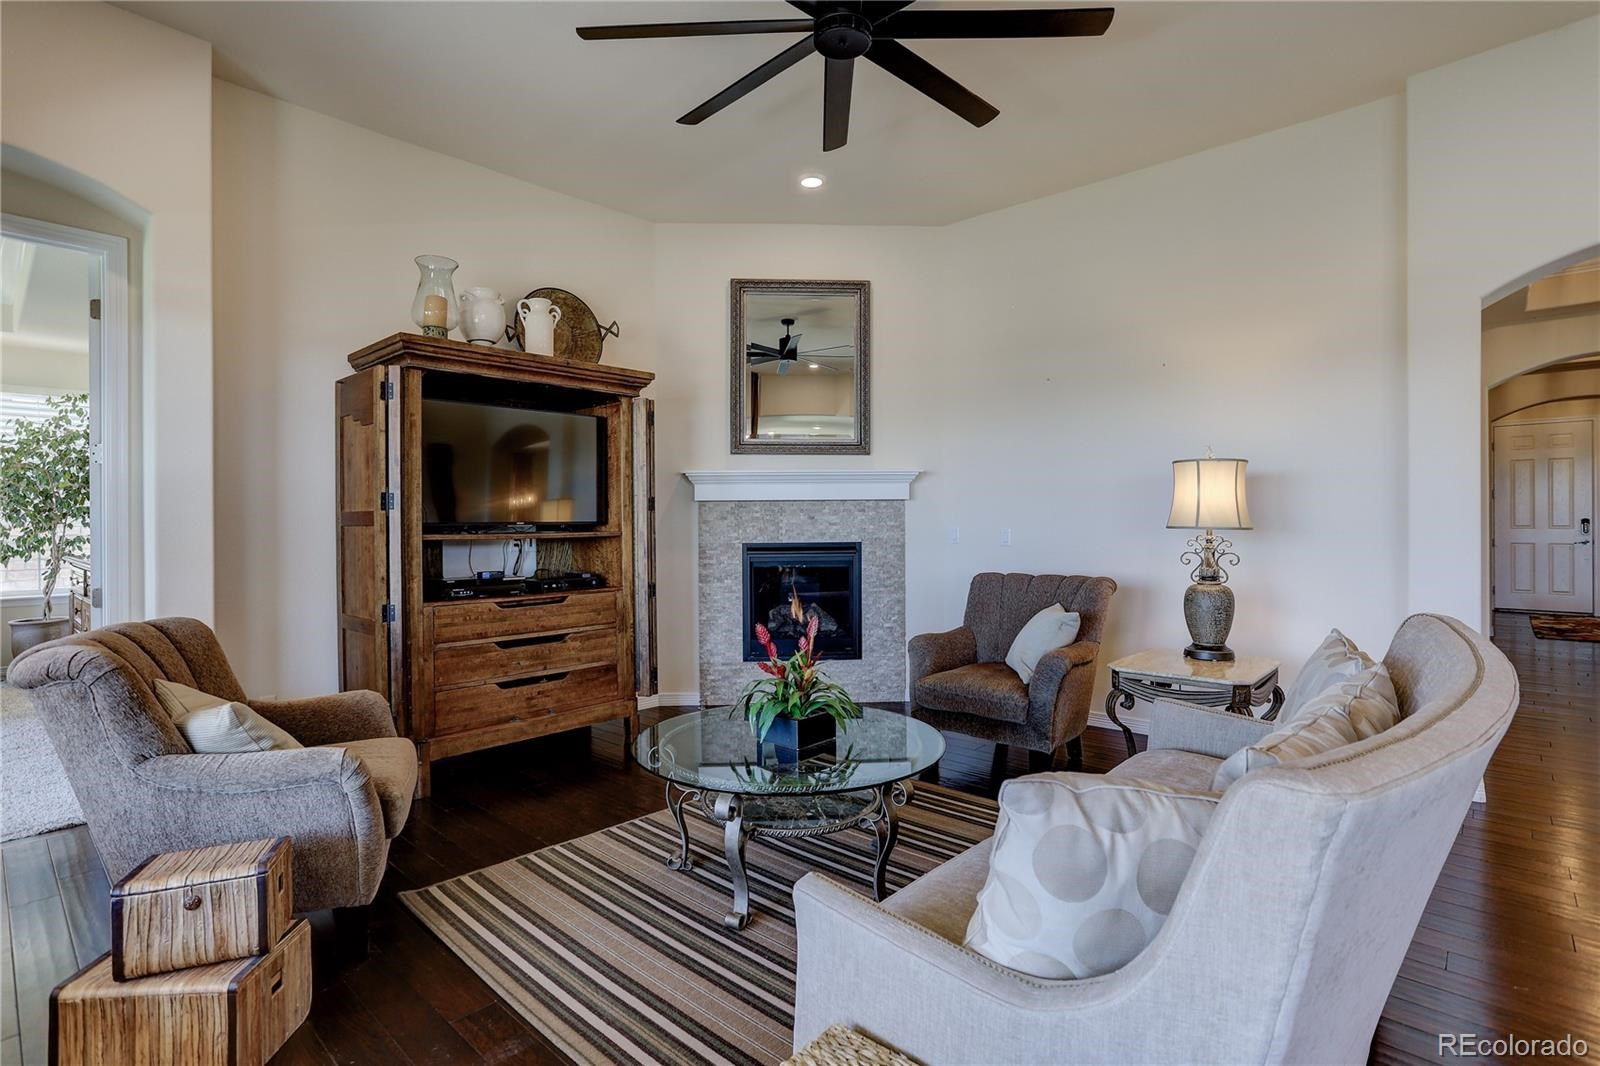 MLS# 8545425 - 5 - 7598 S Country Club Parkway, Aurora, CO 80016